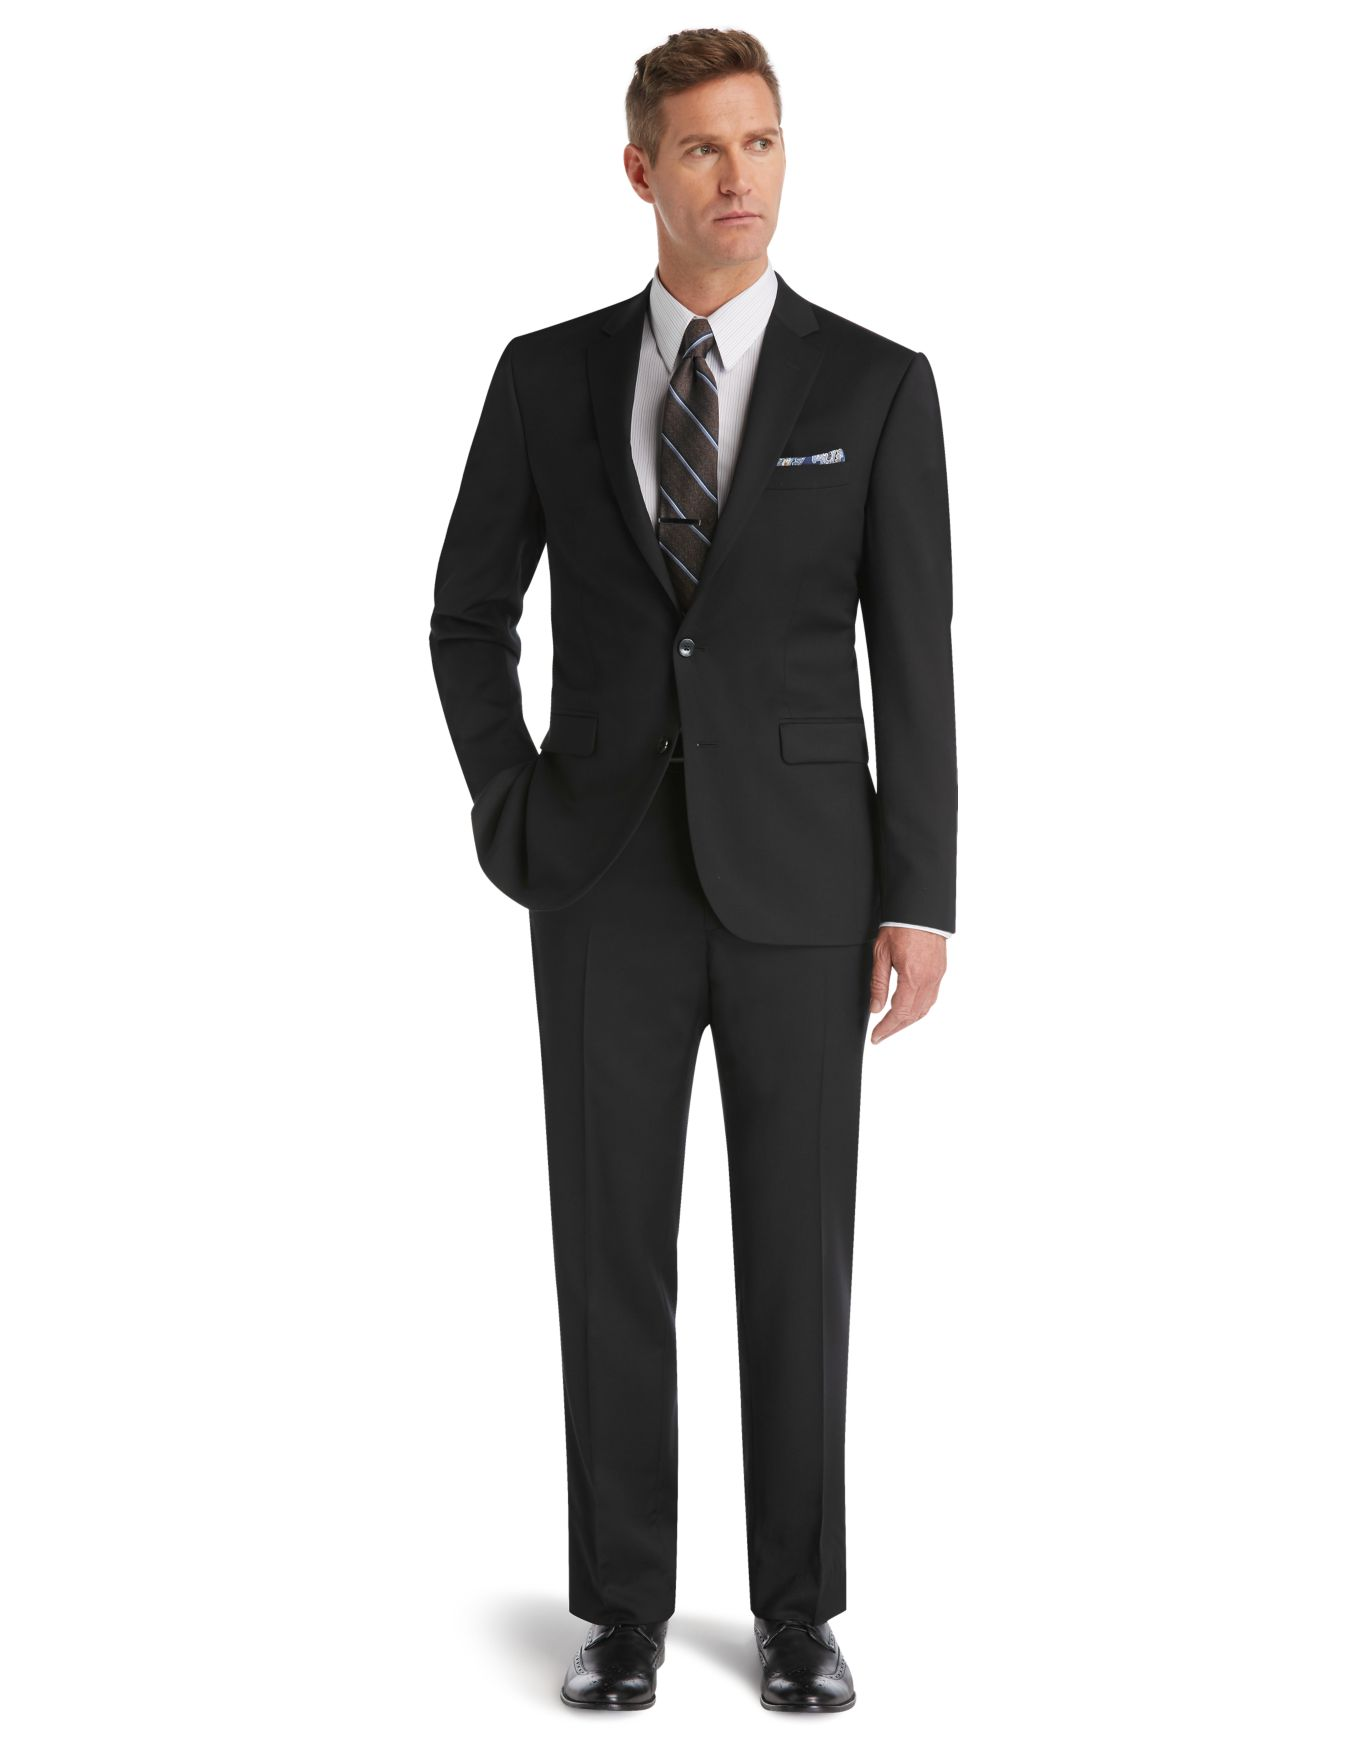 100% Wool Slim Fit Suit - Men's Suits | JoS. A. Bank